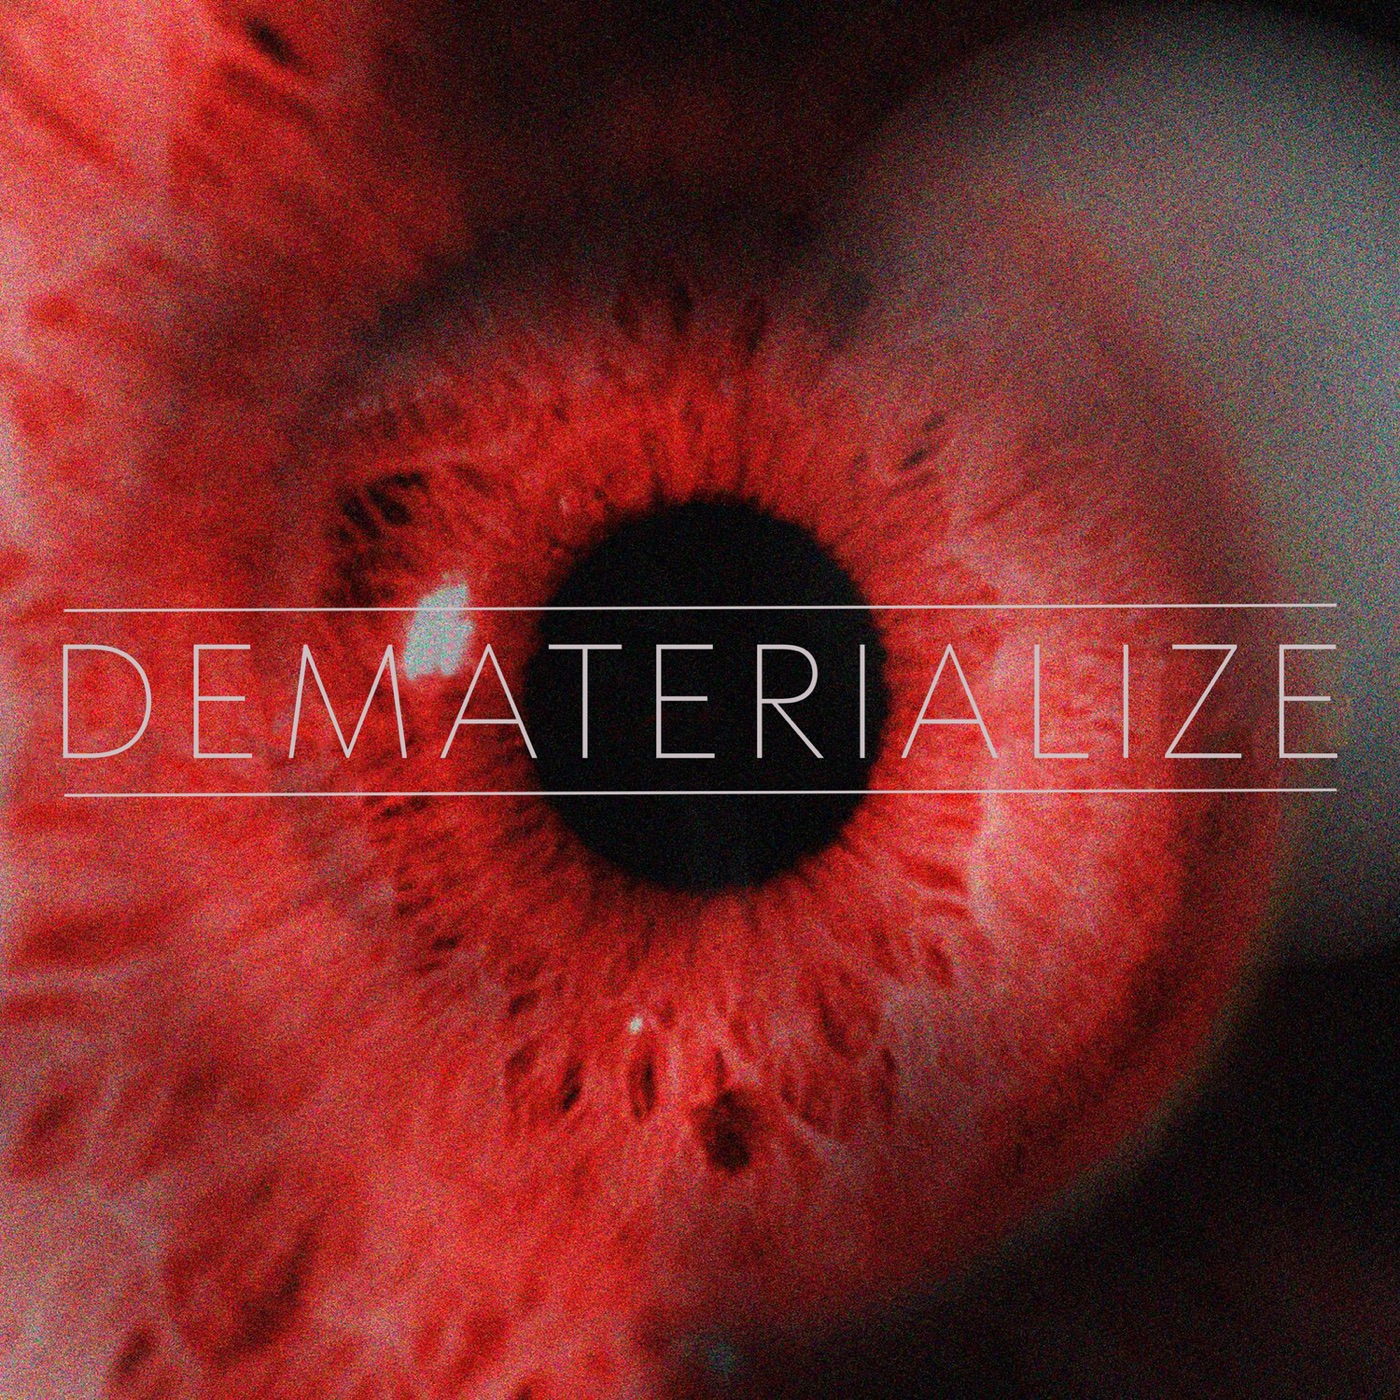 Dematerialize - Dematerialize [EP] (2018)